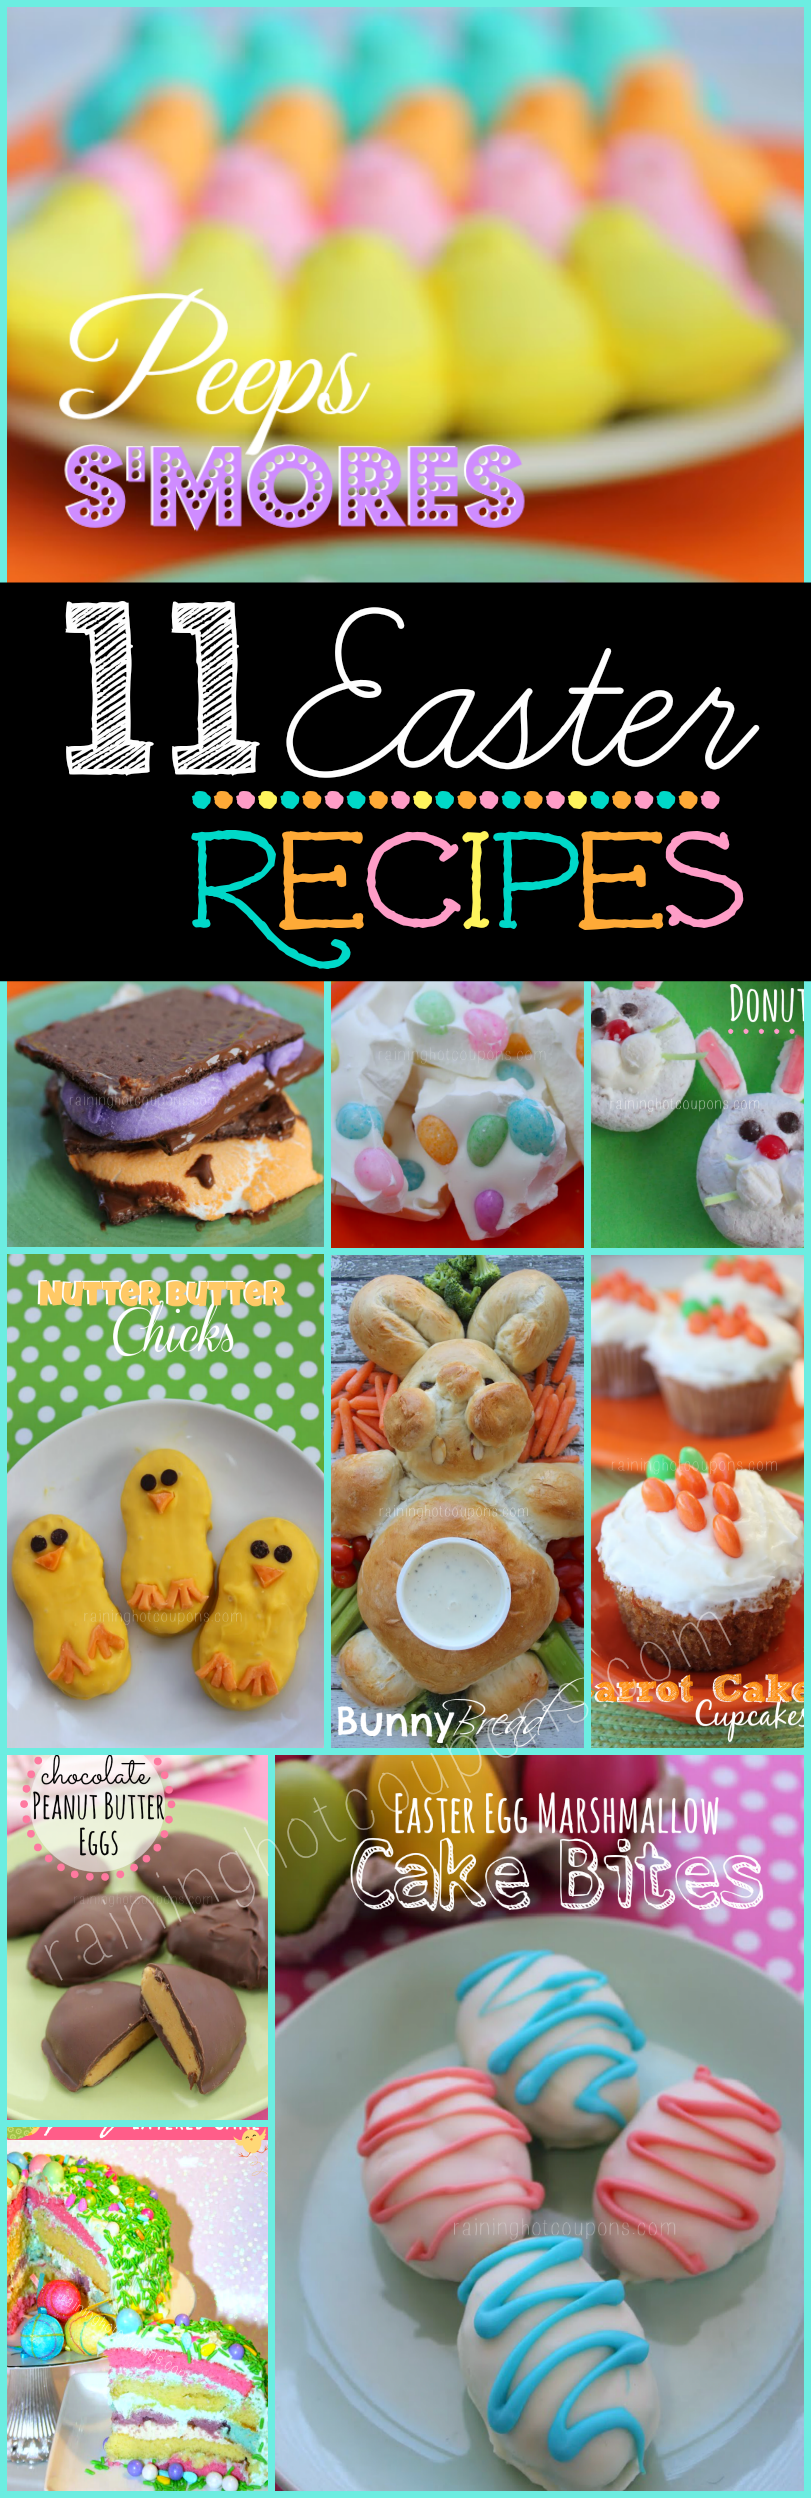 Easter recipes.png 11 Easter Dessert Recipes